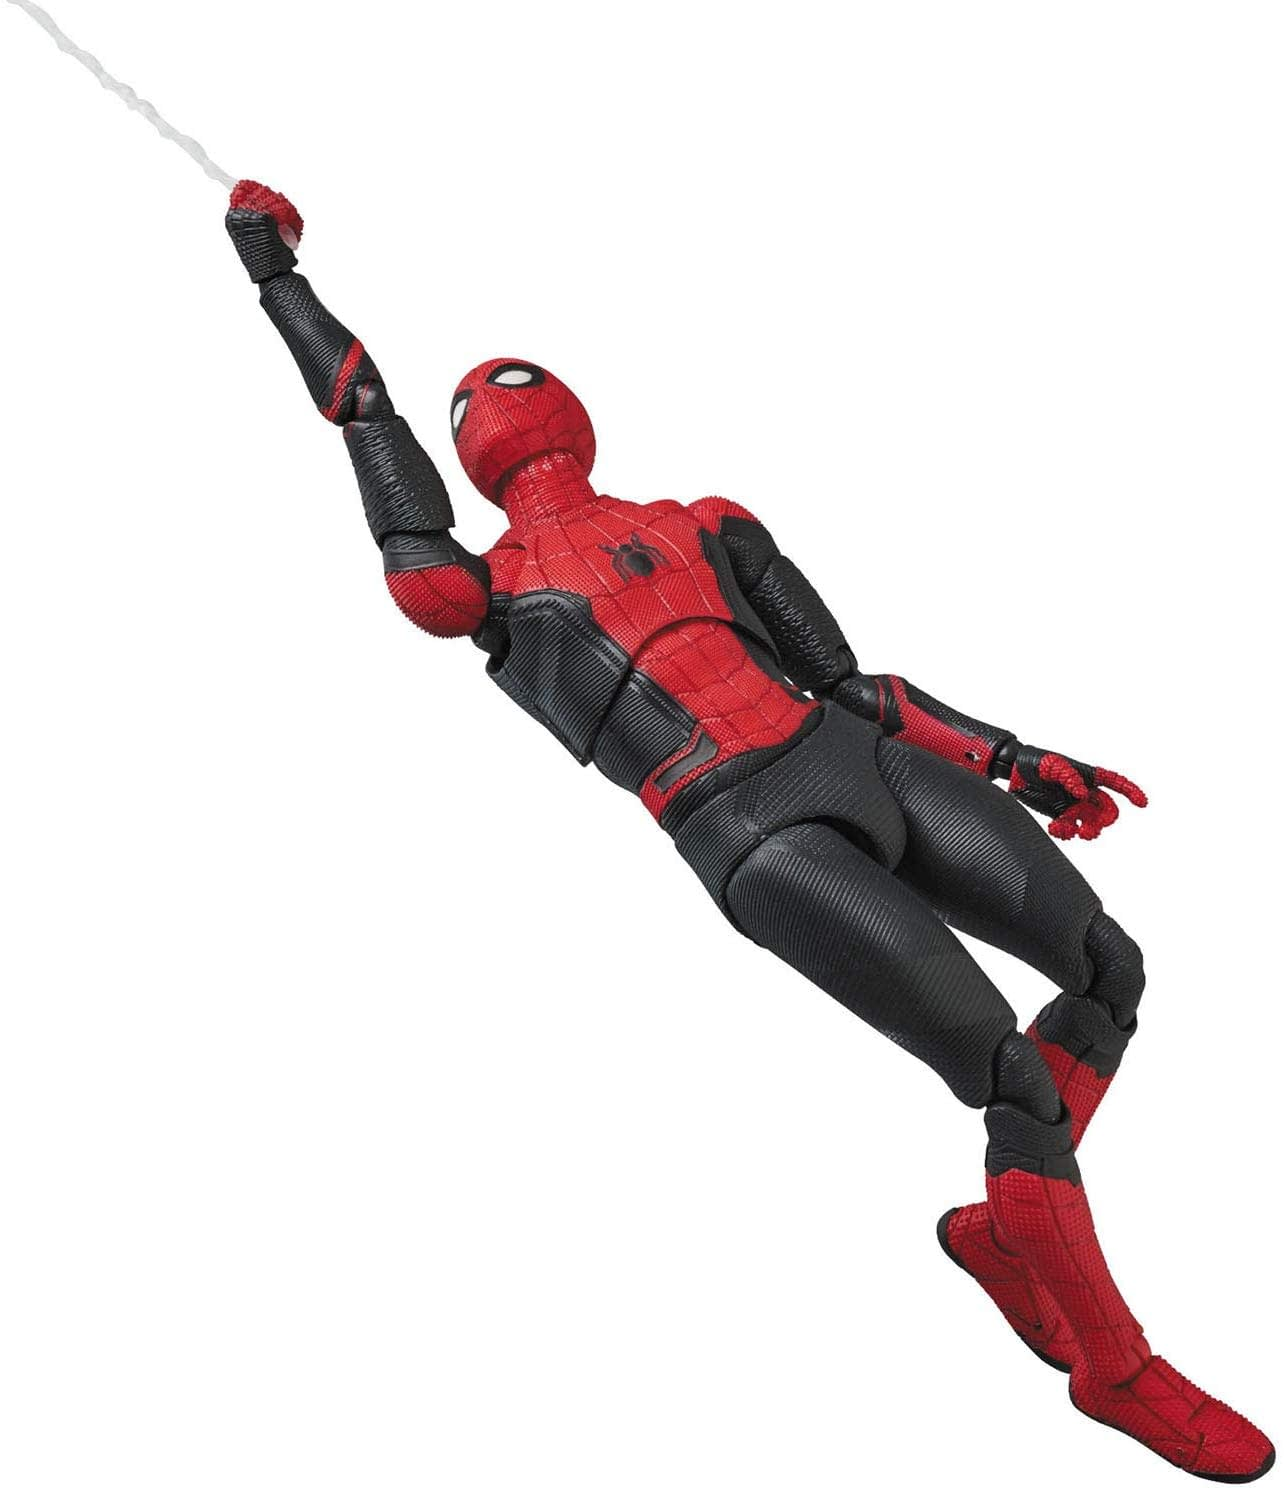 Spider-Man's New Upgraded Suit Is Ready for Action with MAFEX